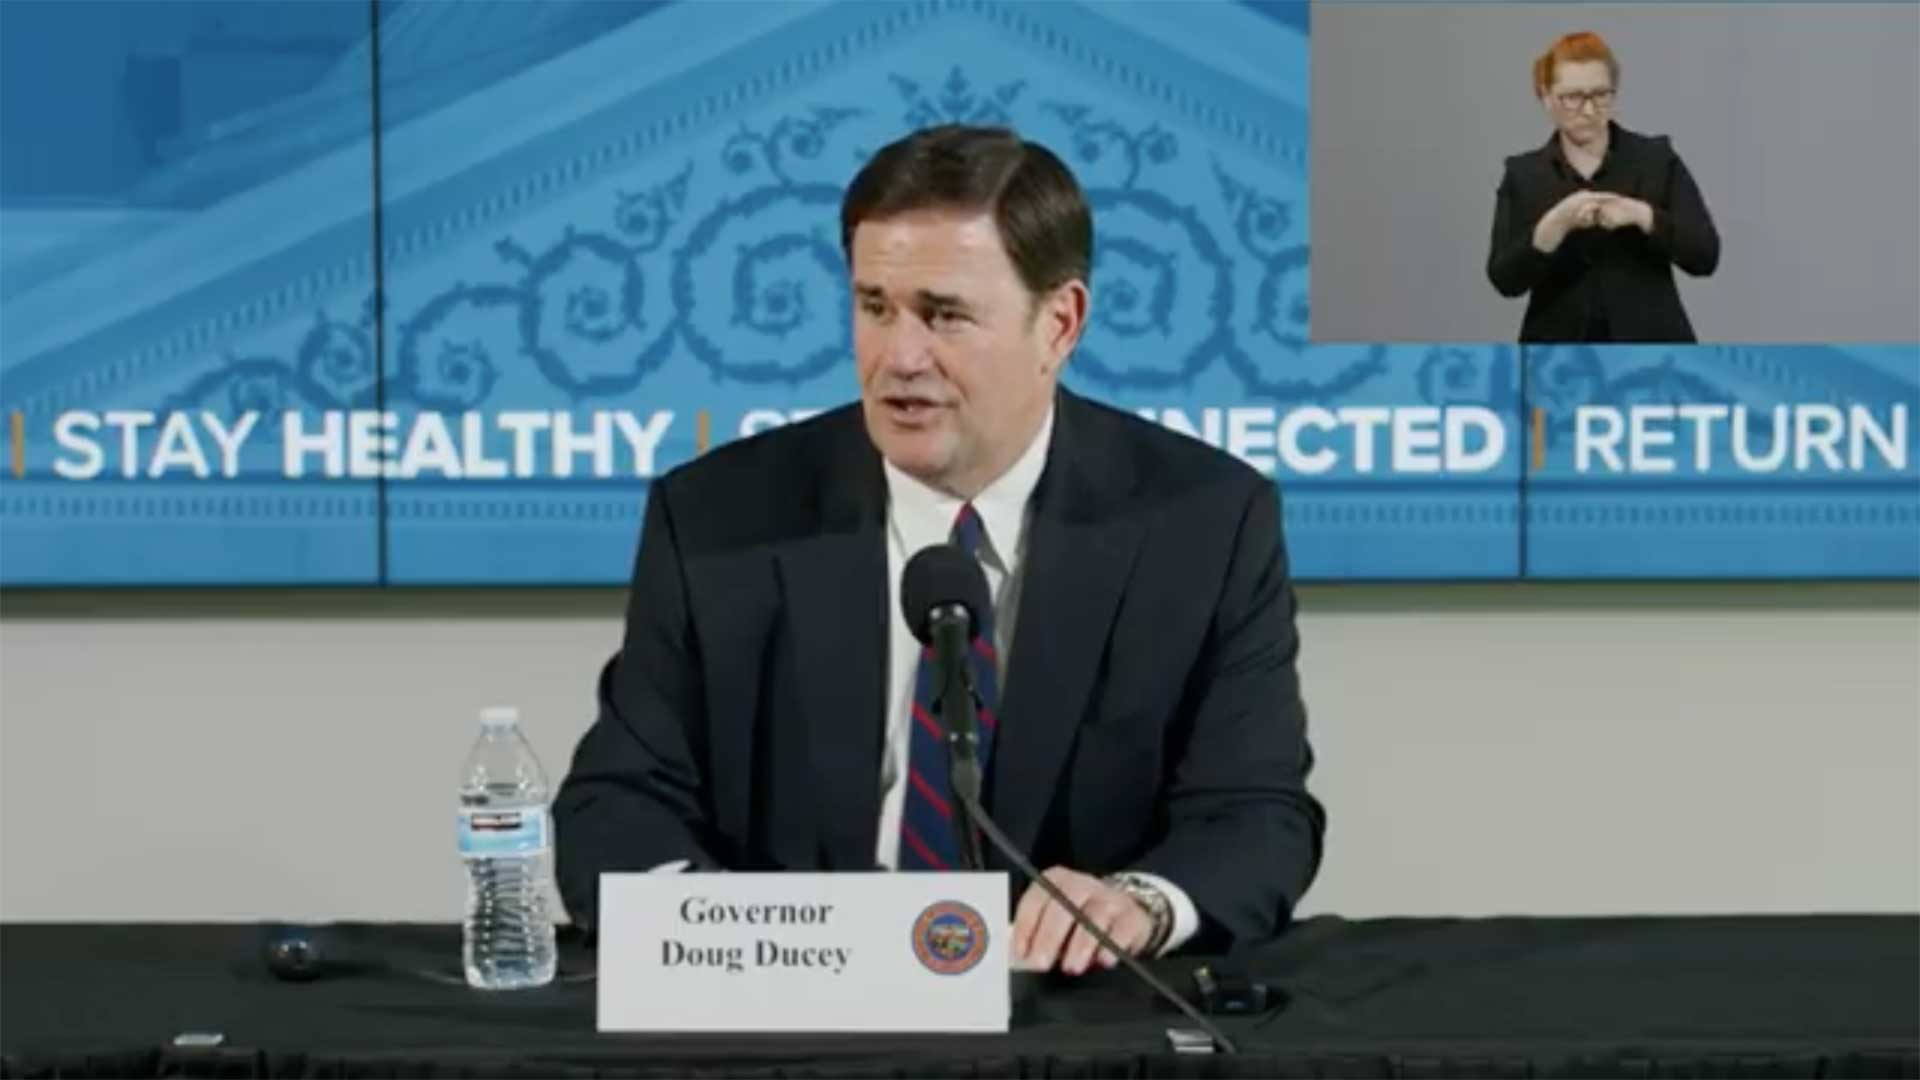 Arizona Gov. Doug Ducey on May 4 announces a plan to open up certain businesses in the state in an effort to restart the economy following coronavirus restrictions on businesses.